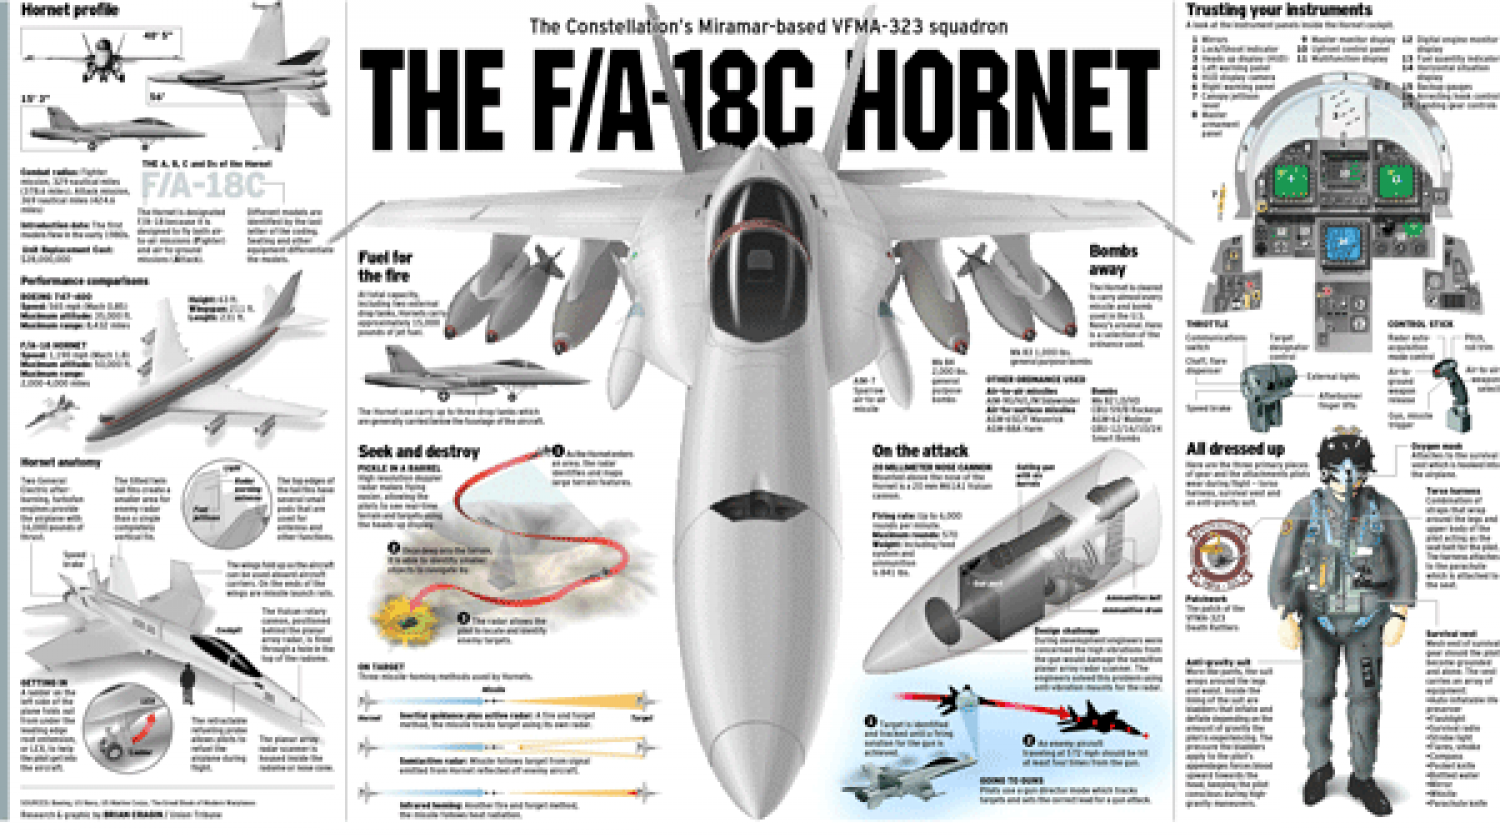 F 18 Hornet Weapons Diagrams Simple Guide About Wiring Diagram Garmin Zumo 590